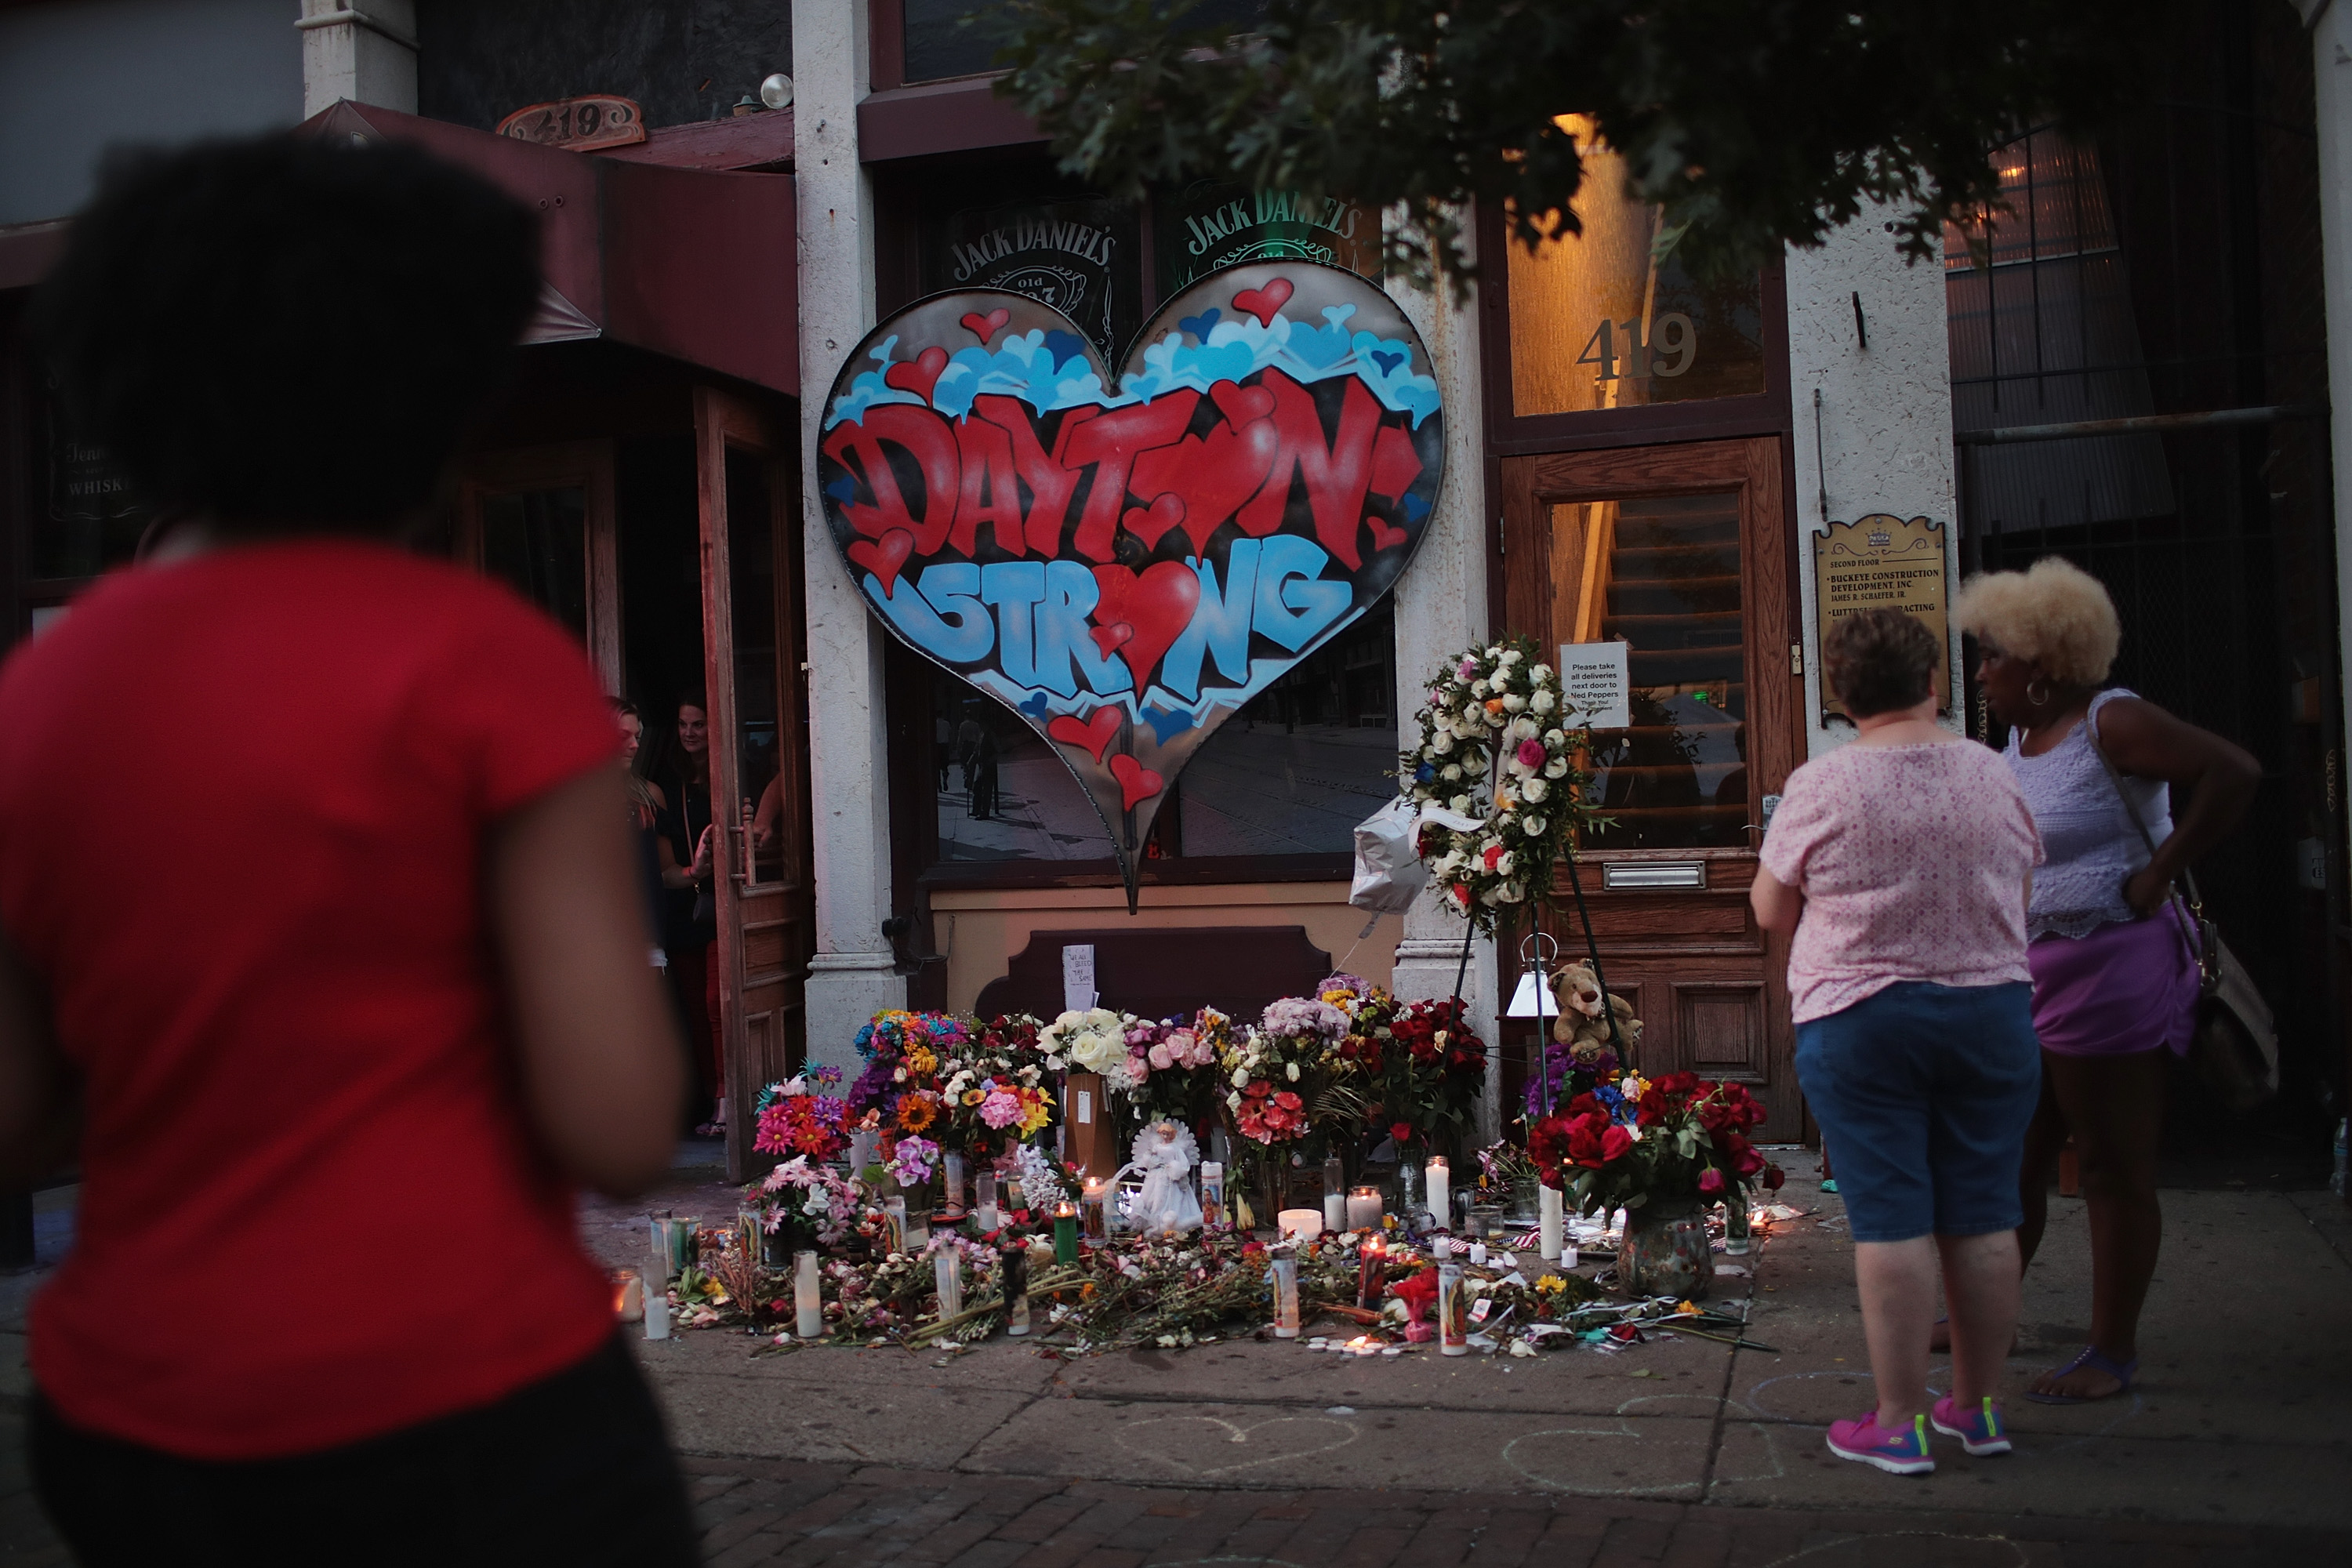 People congregate around a memorial to those killed in a mass shooting on August 06, 2019 in Dayton, Ohio.  Nine people were killed and another 27 injured when a gunman identified as 24-year-old Connor Betts opened fire with a AR-15 style rifle in the popular entertainment district.